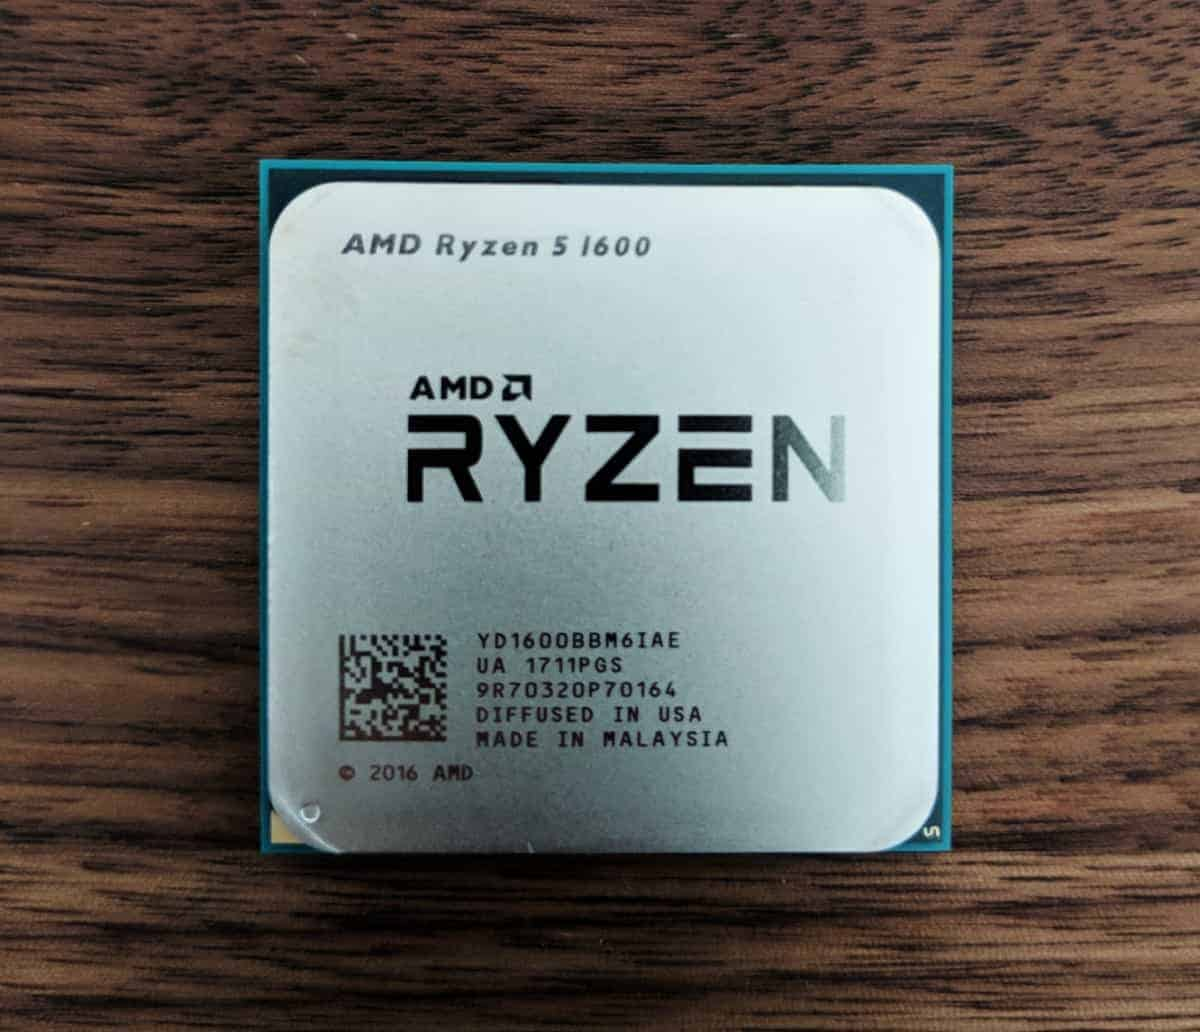 AMD-Ryzen5-1600-Photos-2 AMD Ryzen 5 1600 CPU Review